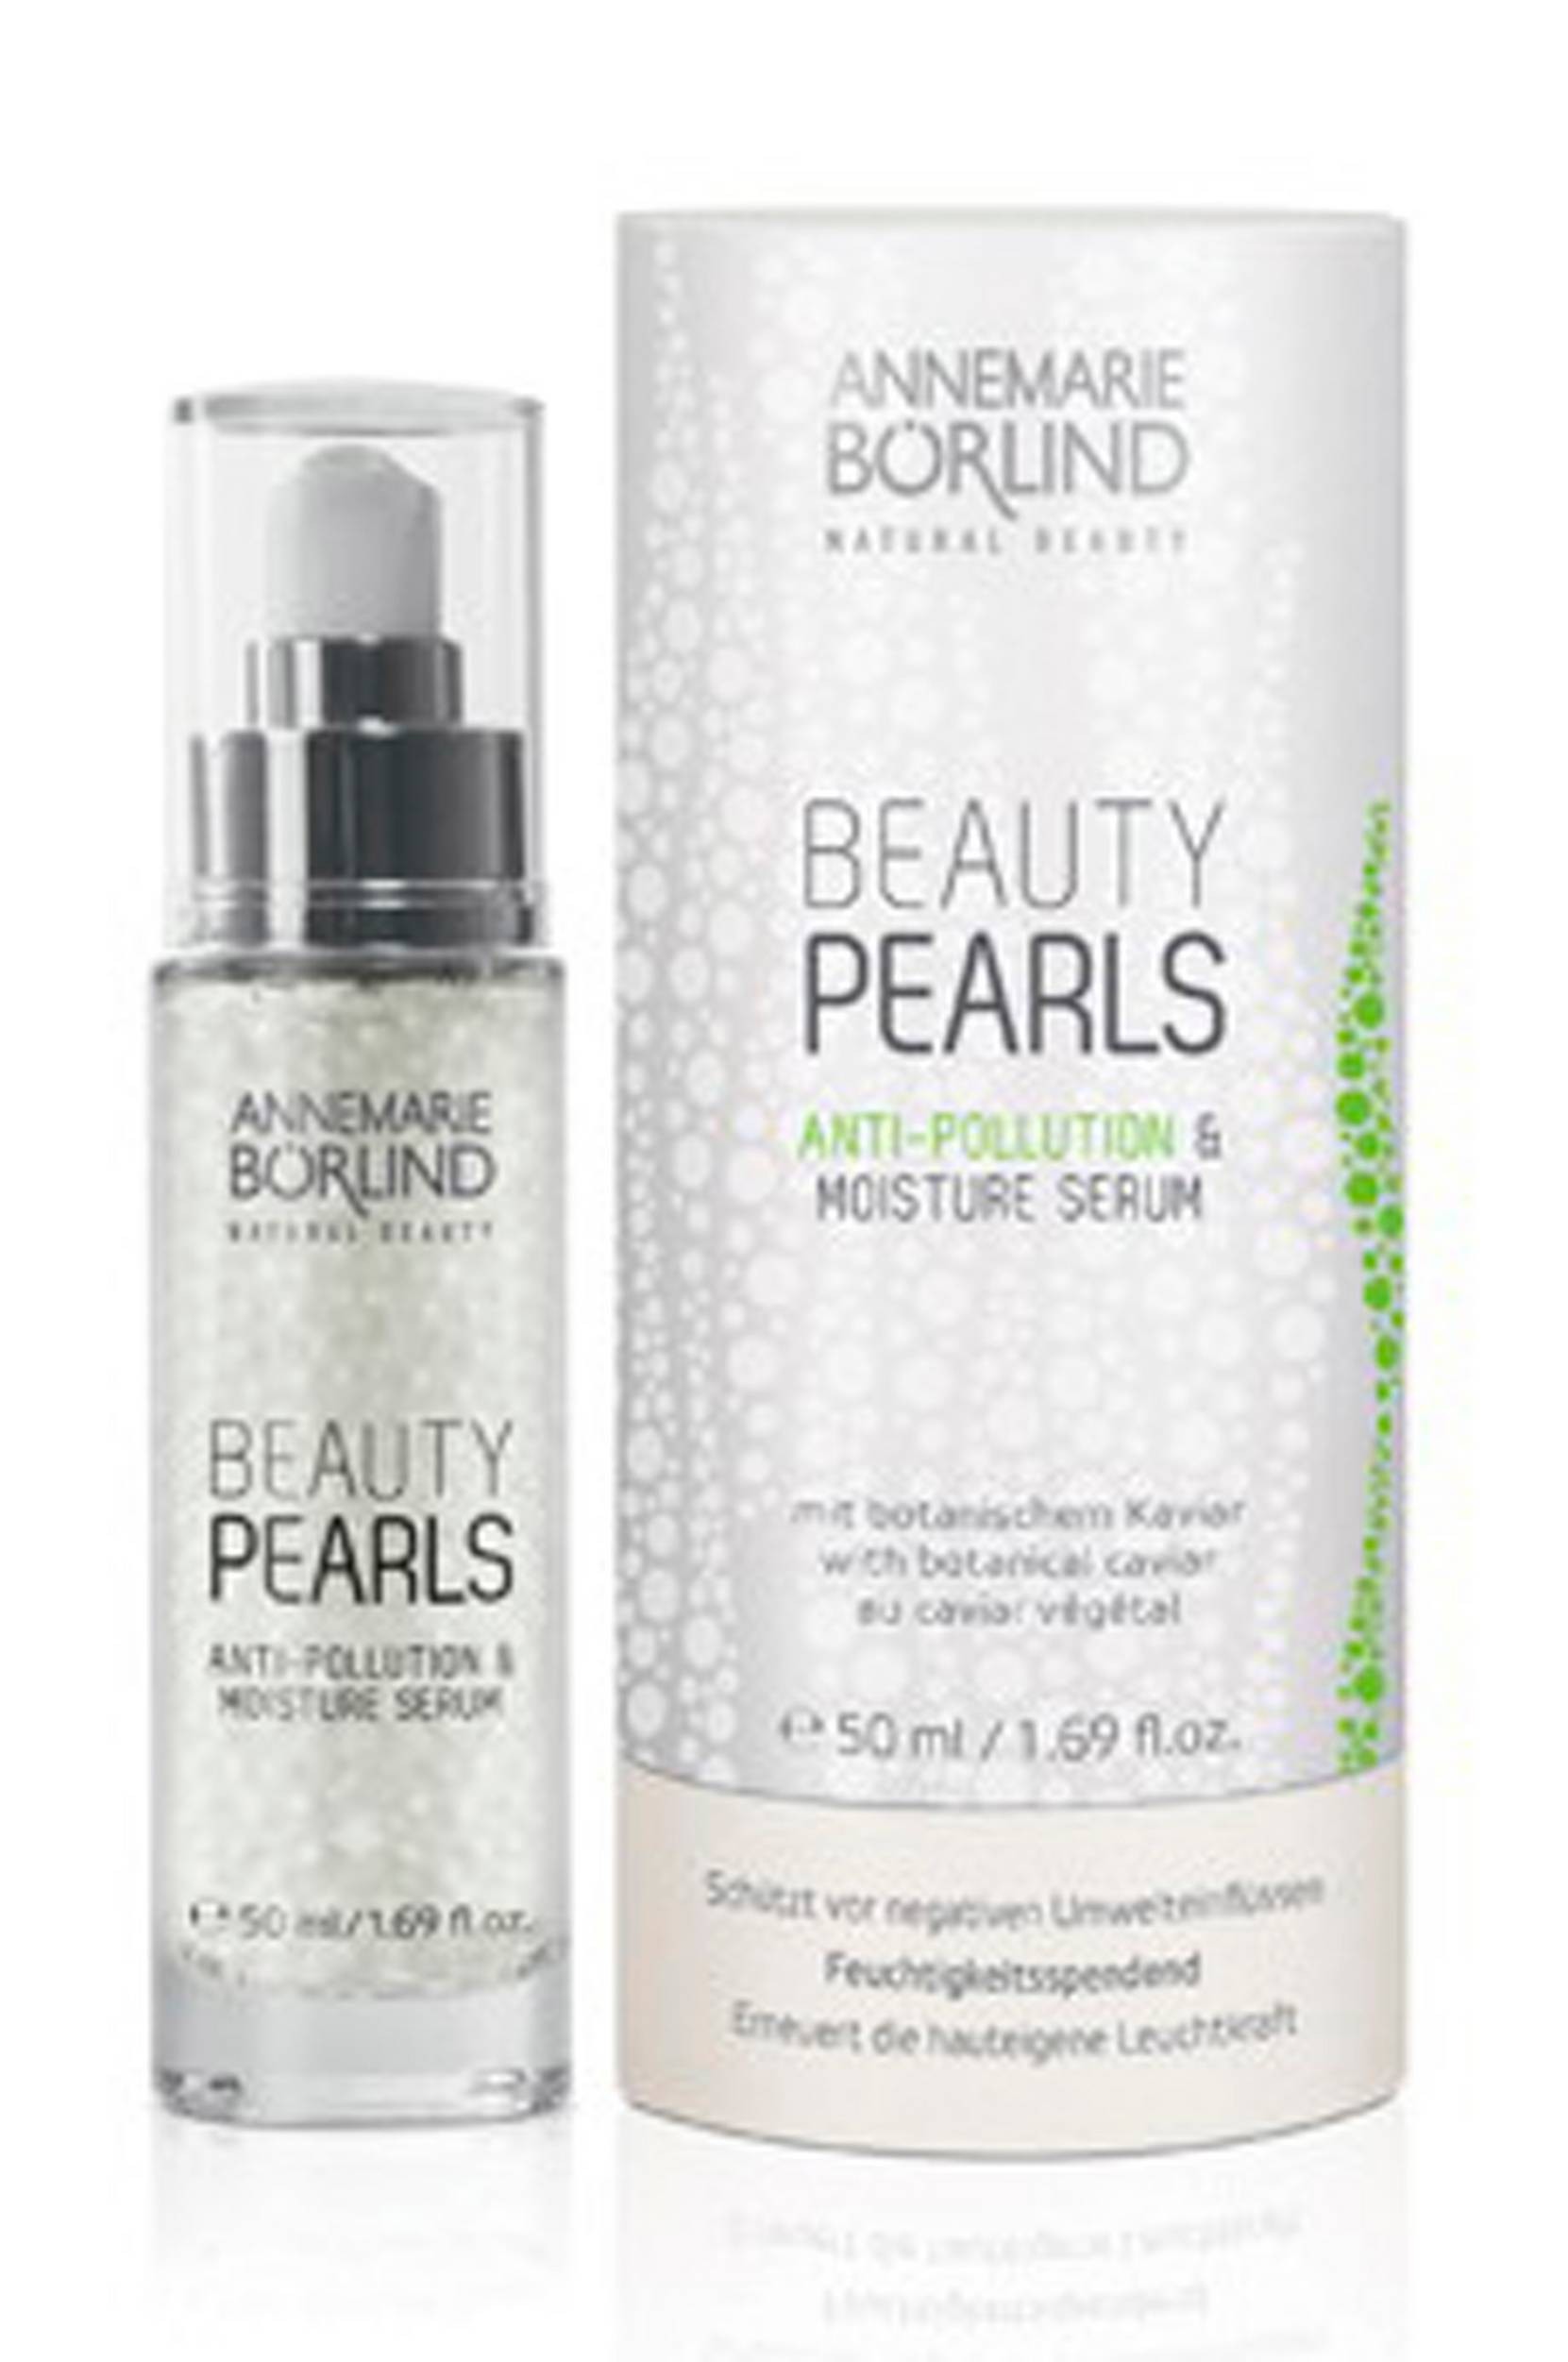 Beauty Pearls Moisture Serum 50 ml